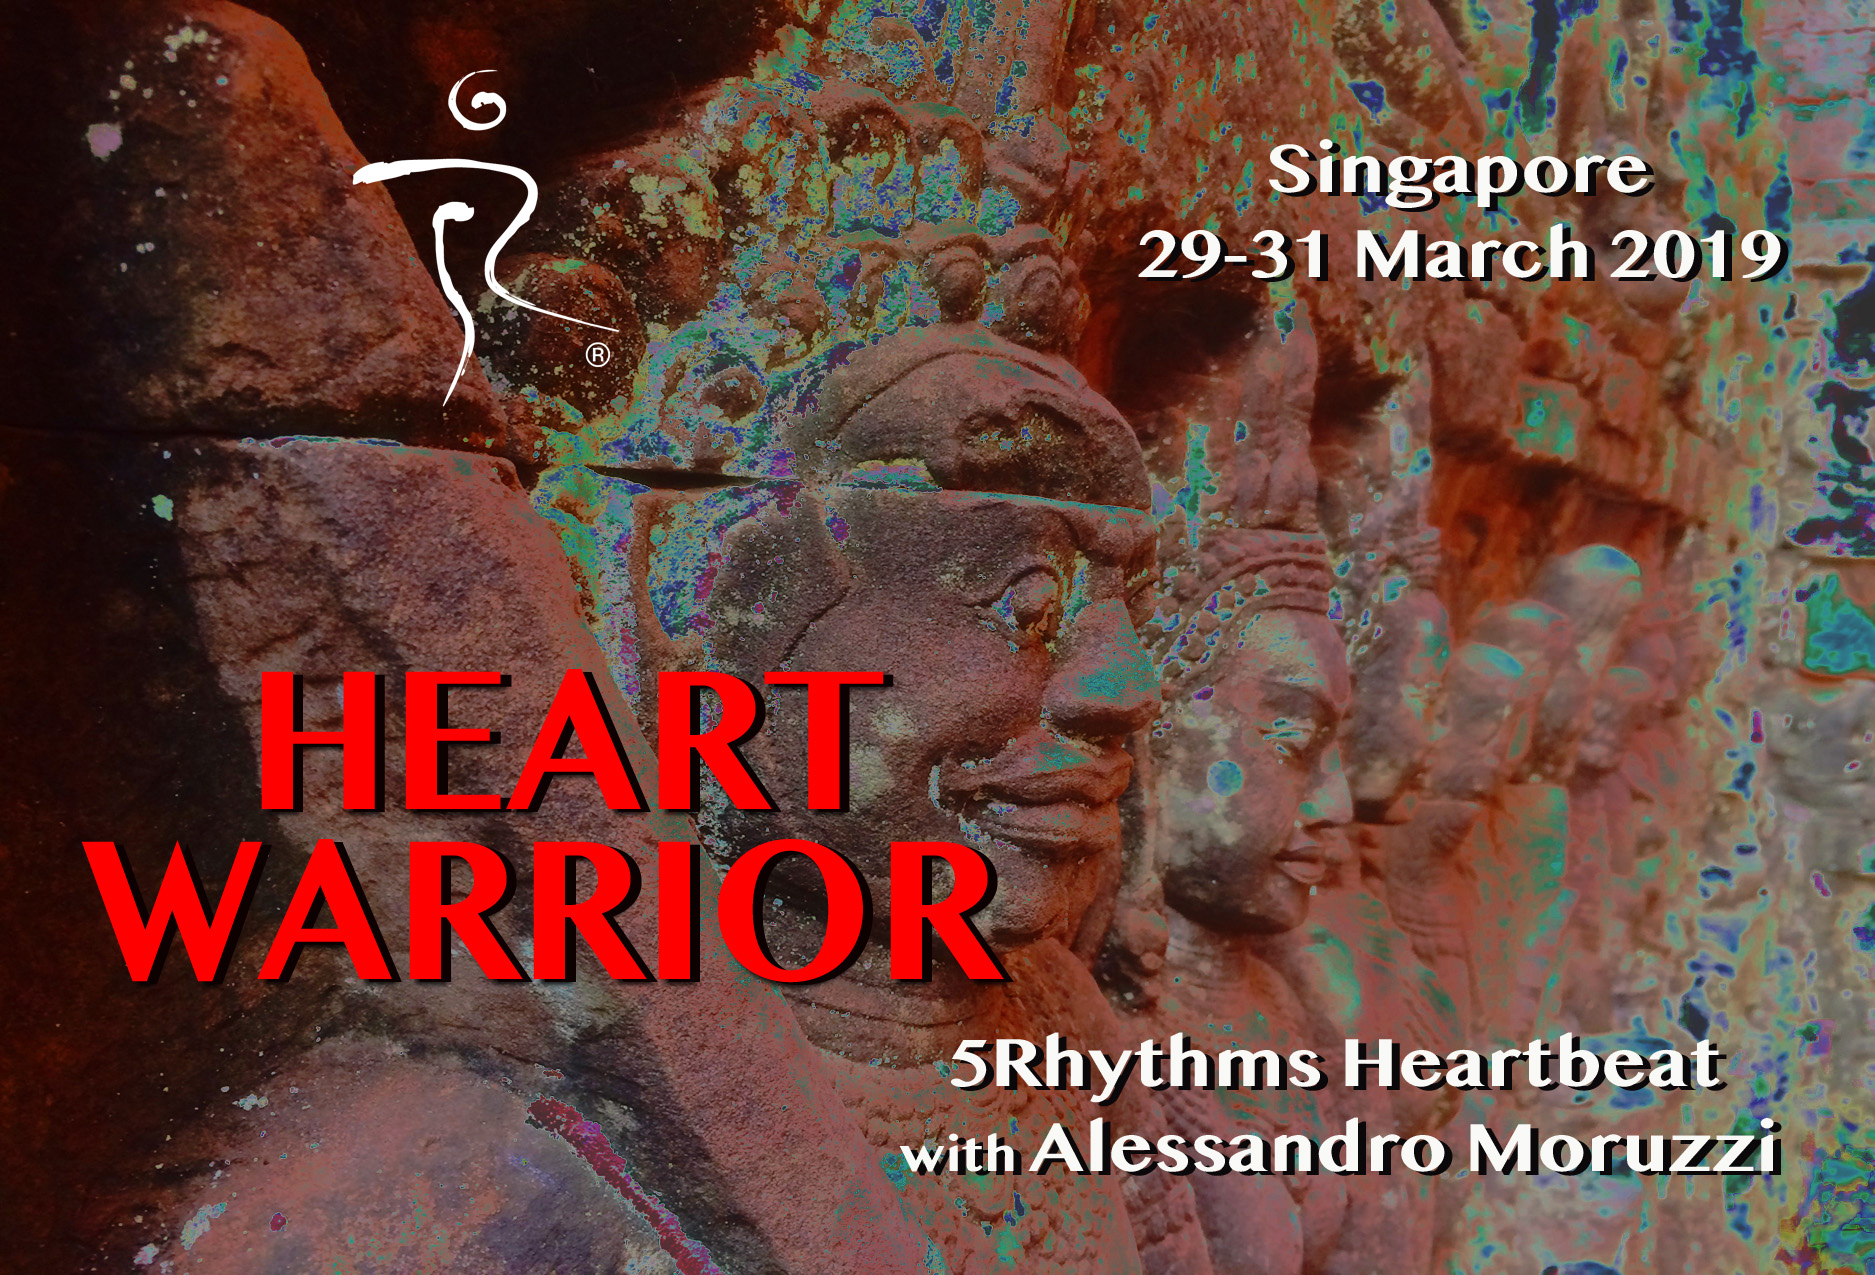 Heart Warrior 5R Heartbeat Singapore 2019 .jpg